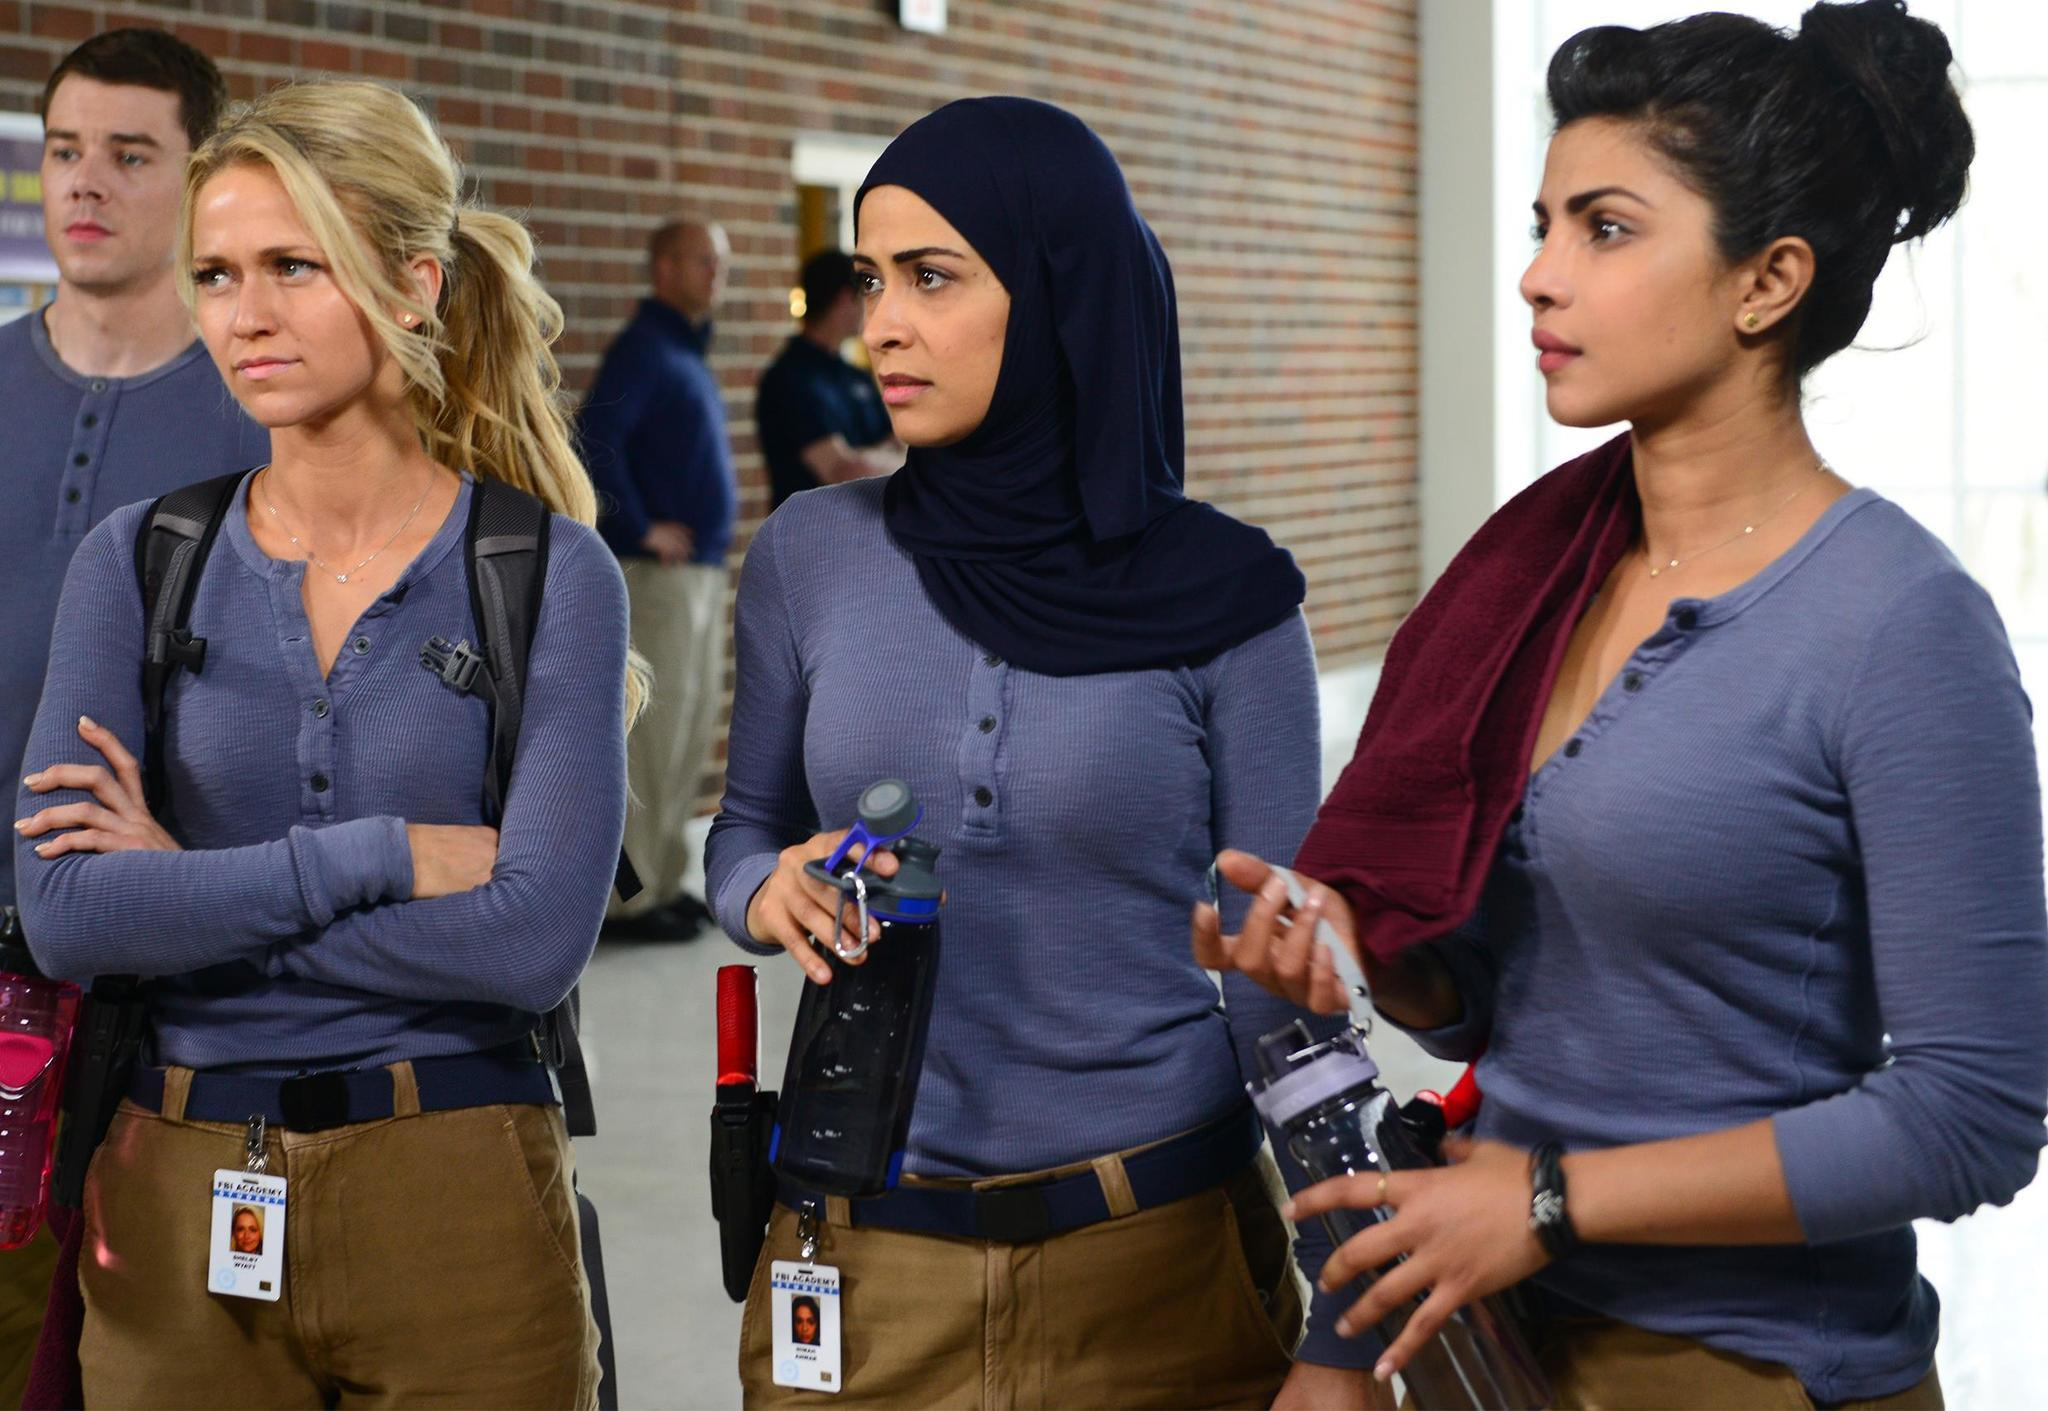 """Quantico's"" Priyanka Chopra, right, Yasmine Al Massri, Johanna Braddy and Brian J. Smith. (Guy D'Alema / ABC)"